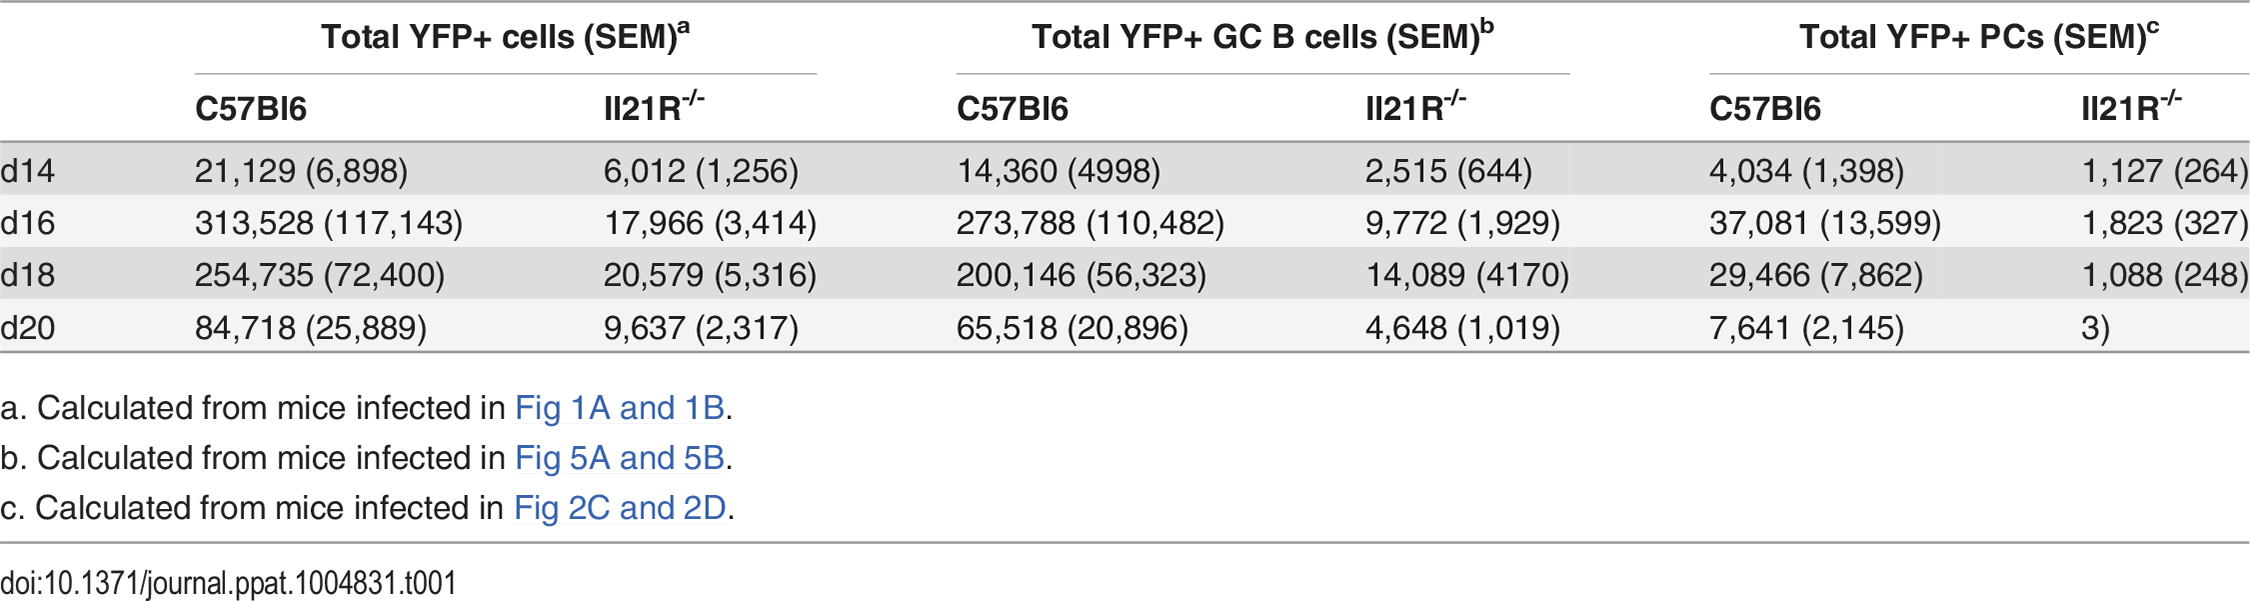 Average number of YFP<sup>+</sup> cells per spleen.